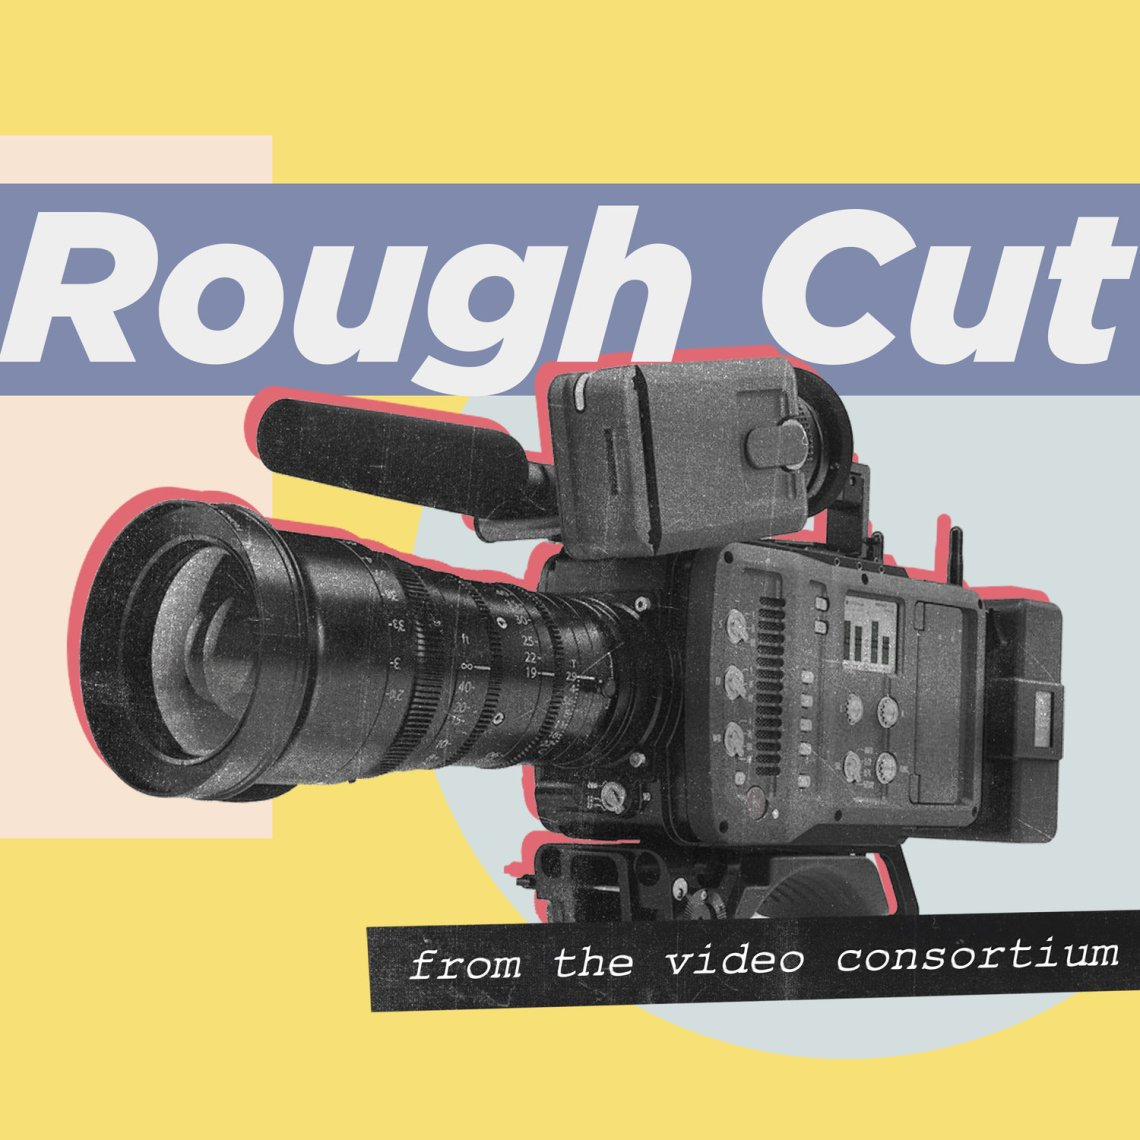 Image result for rough cut from the video consortium